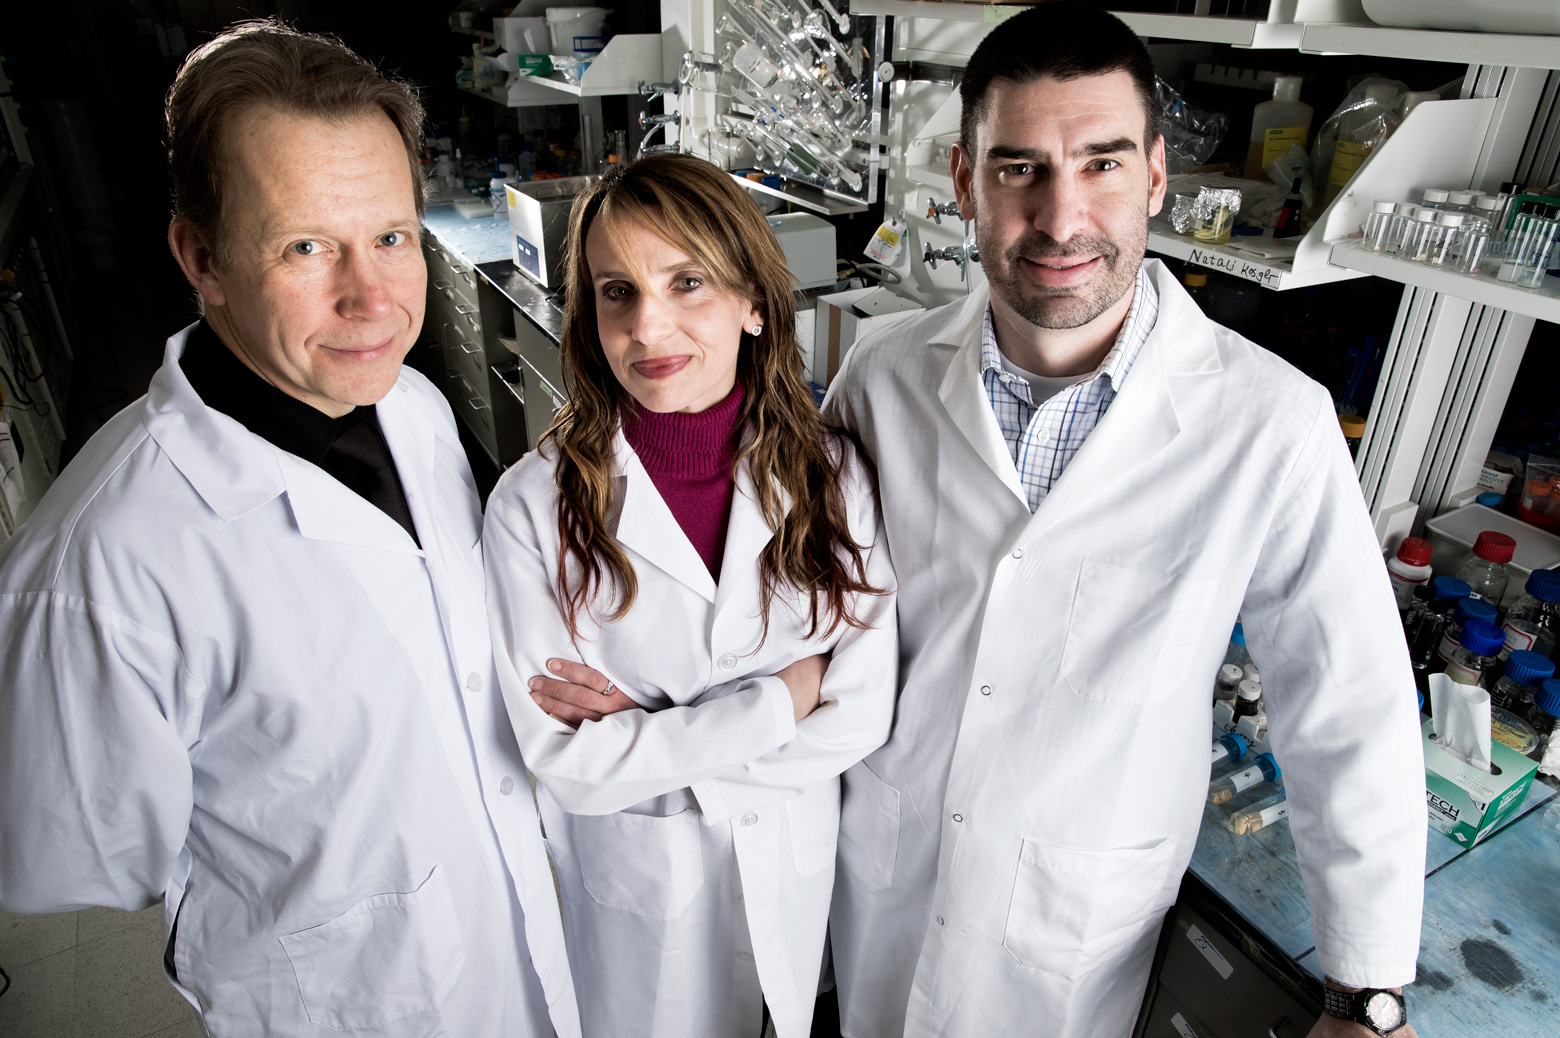 Nicholas Kotov, Angela Violi, and Scott VanEpps stand together in the lab